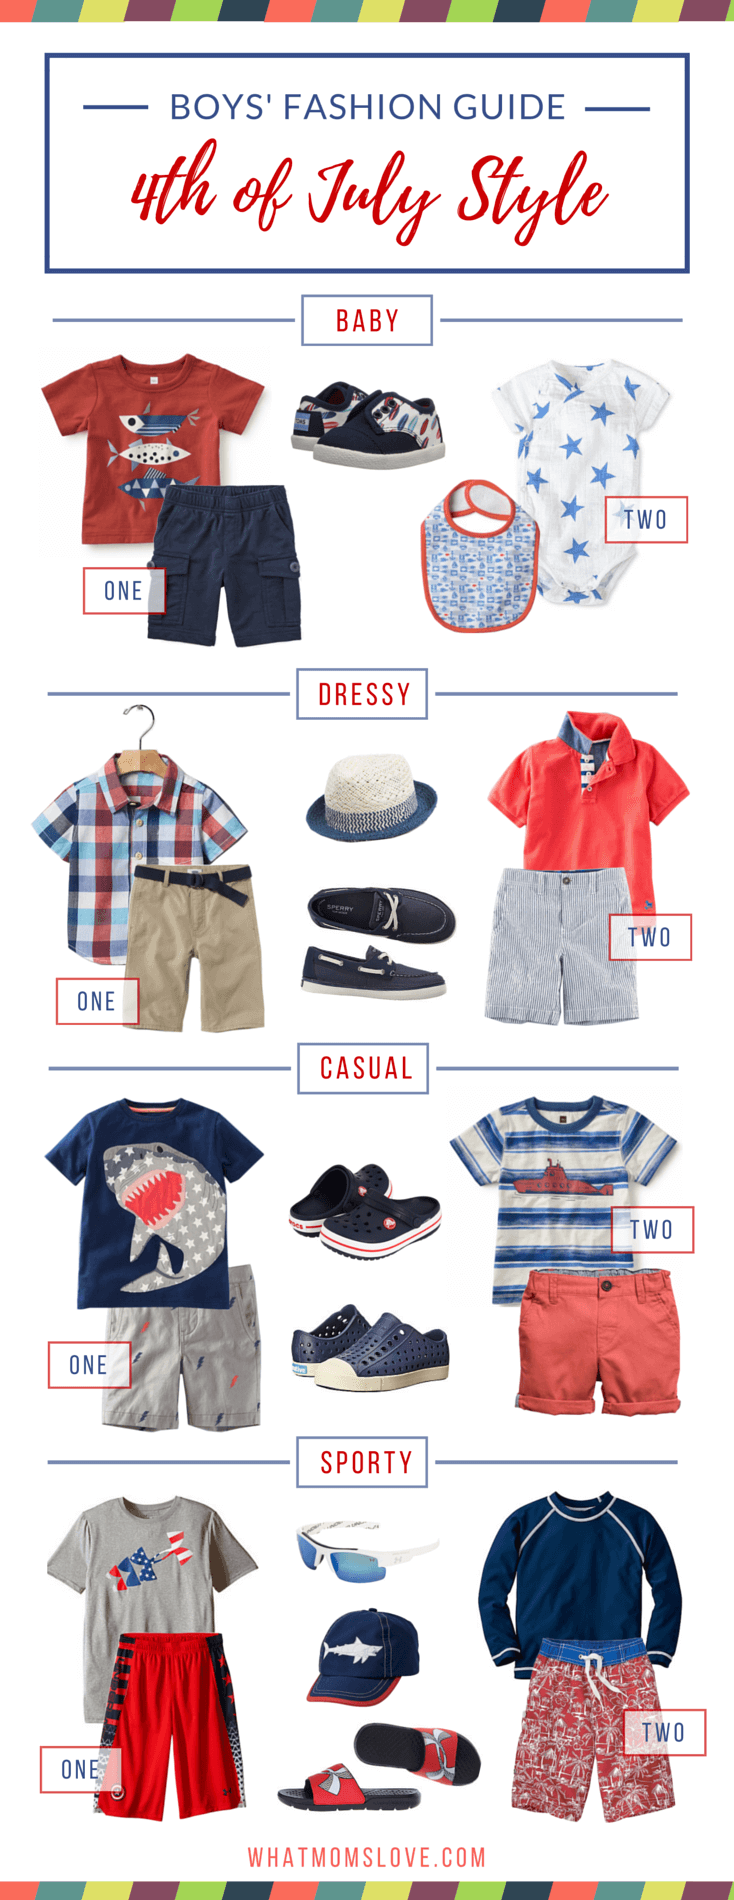 Patriotic, Stylish Boys' Fashion Outfits to Wear to Celebrate 4th of July